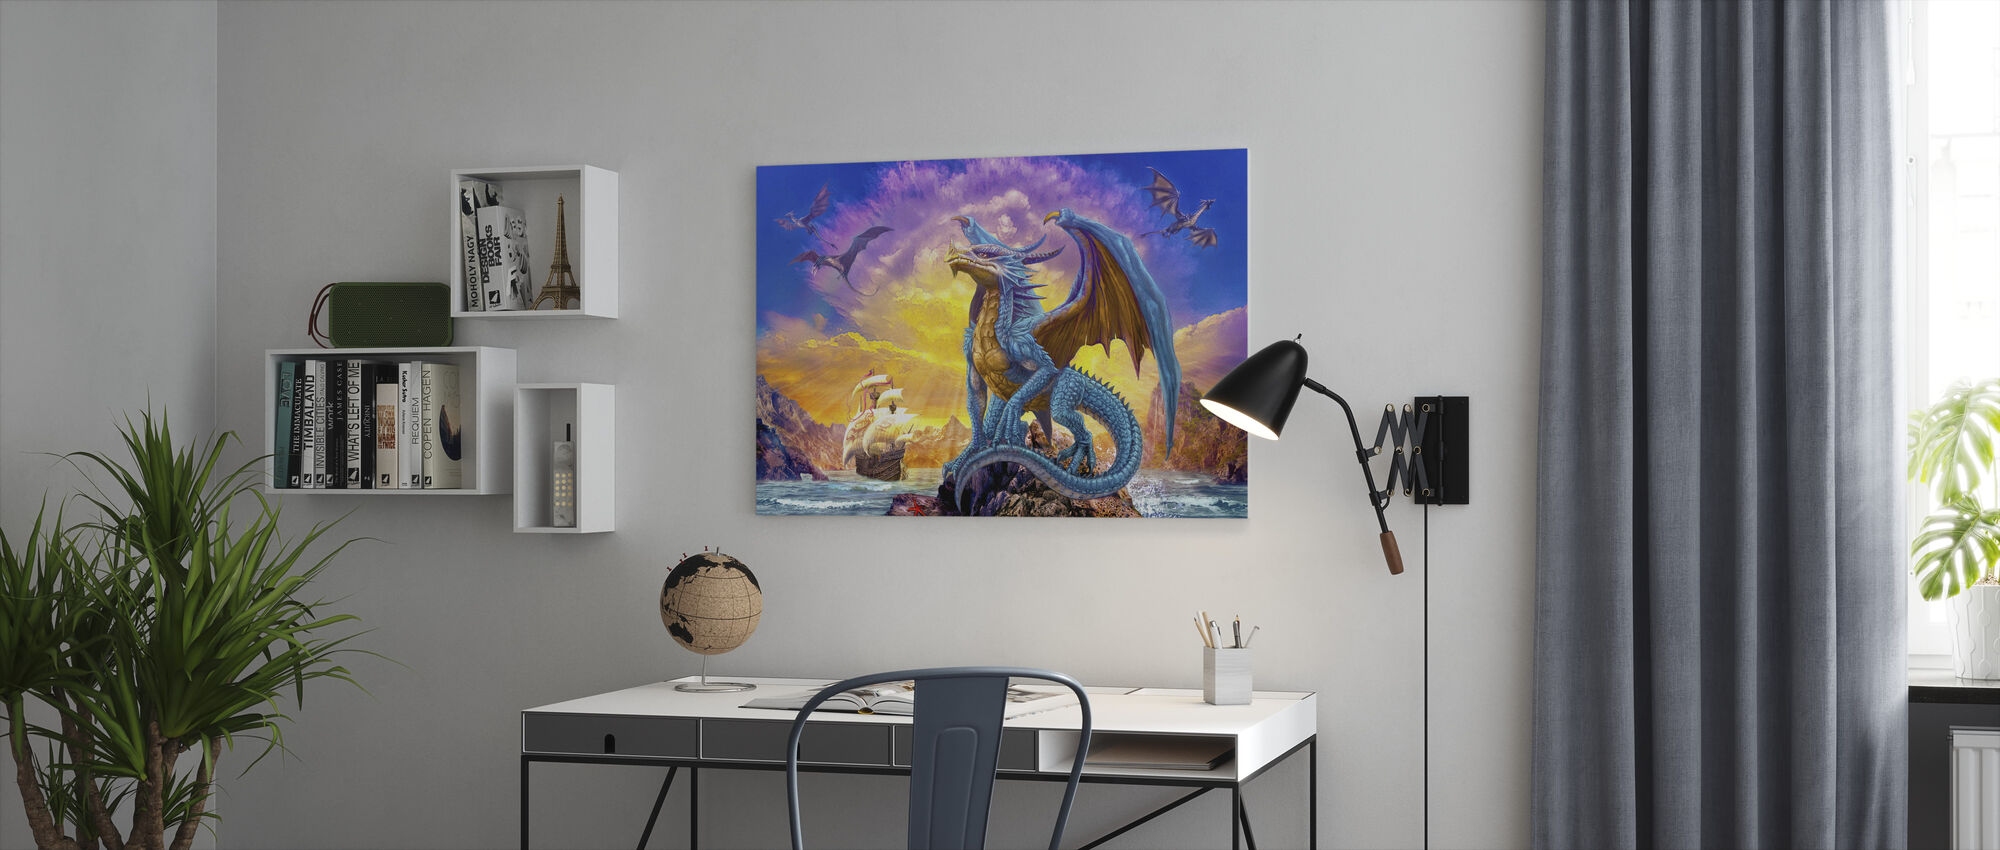 Dragons and Ship - Canvas print - Office